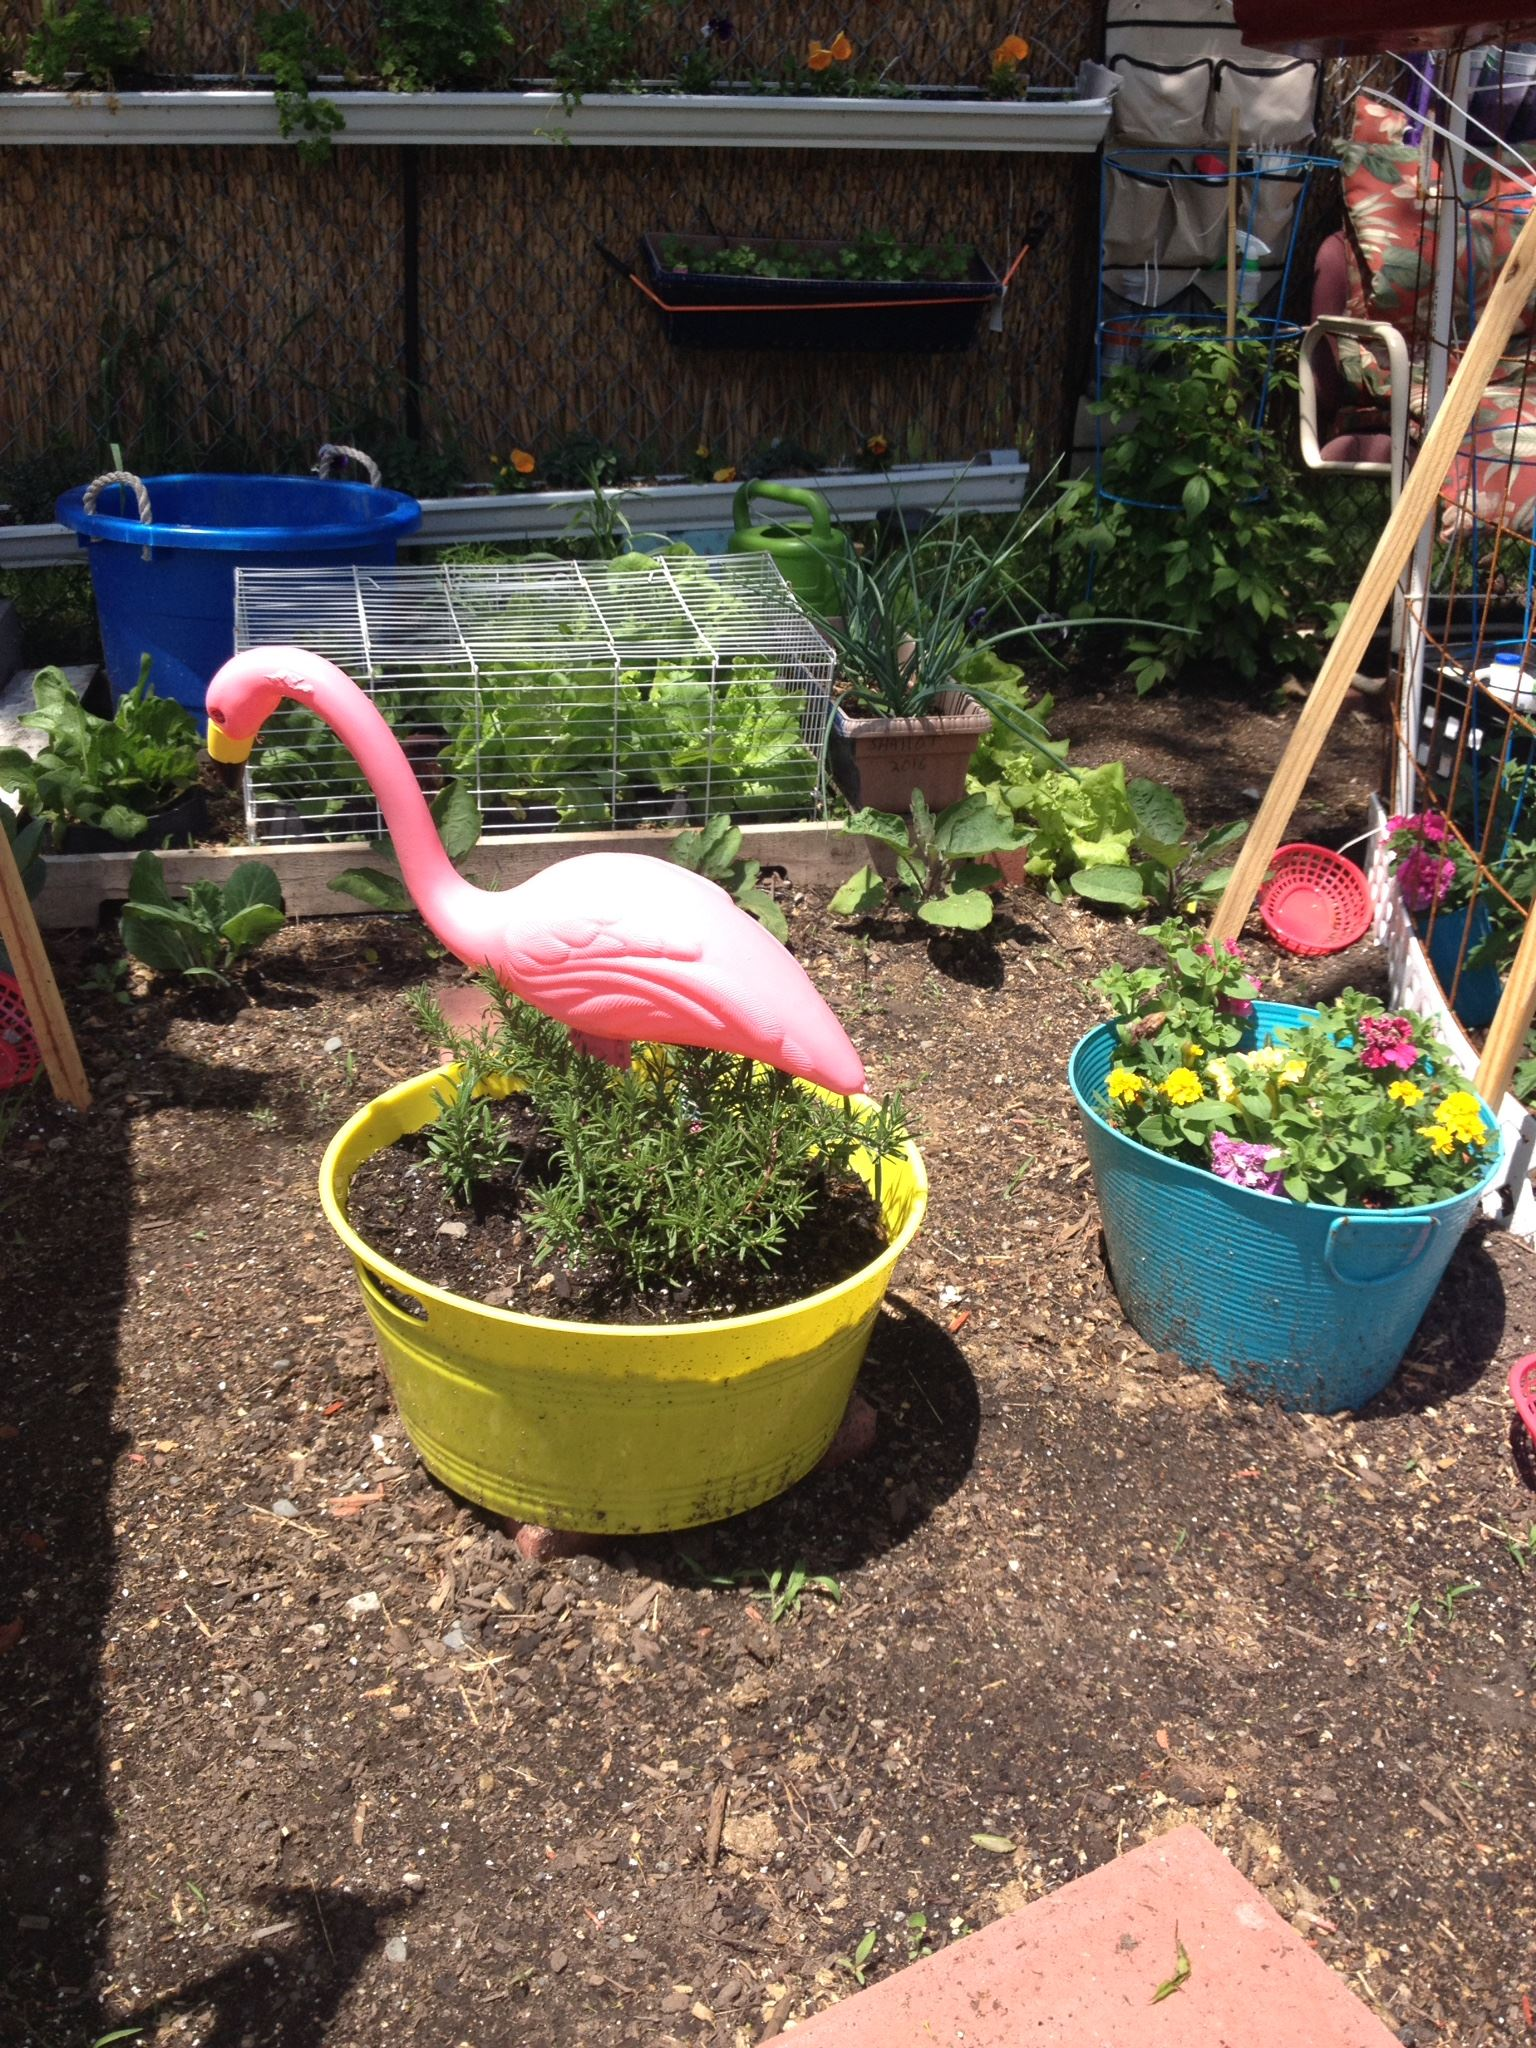 Two Planters - One Yellow Planter with a Plastic Flamingo in It, and One Blue Planter